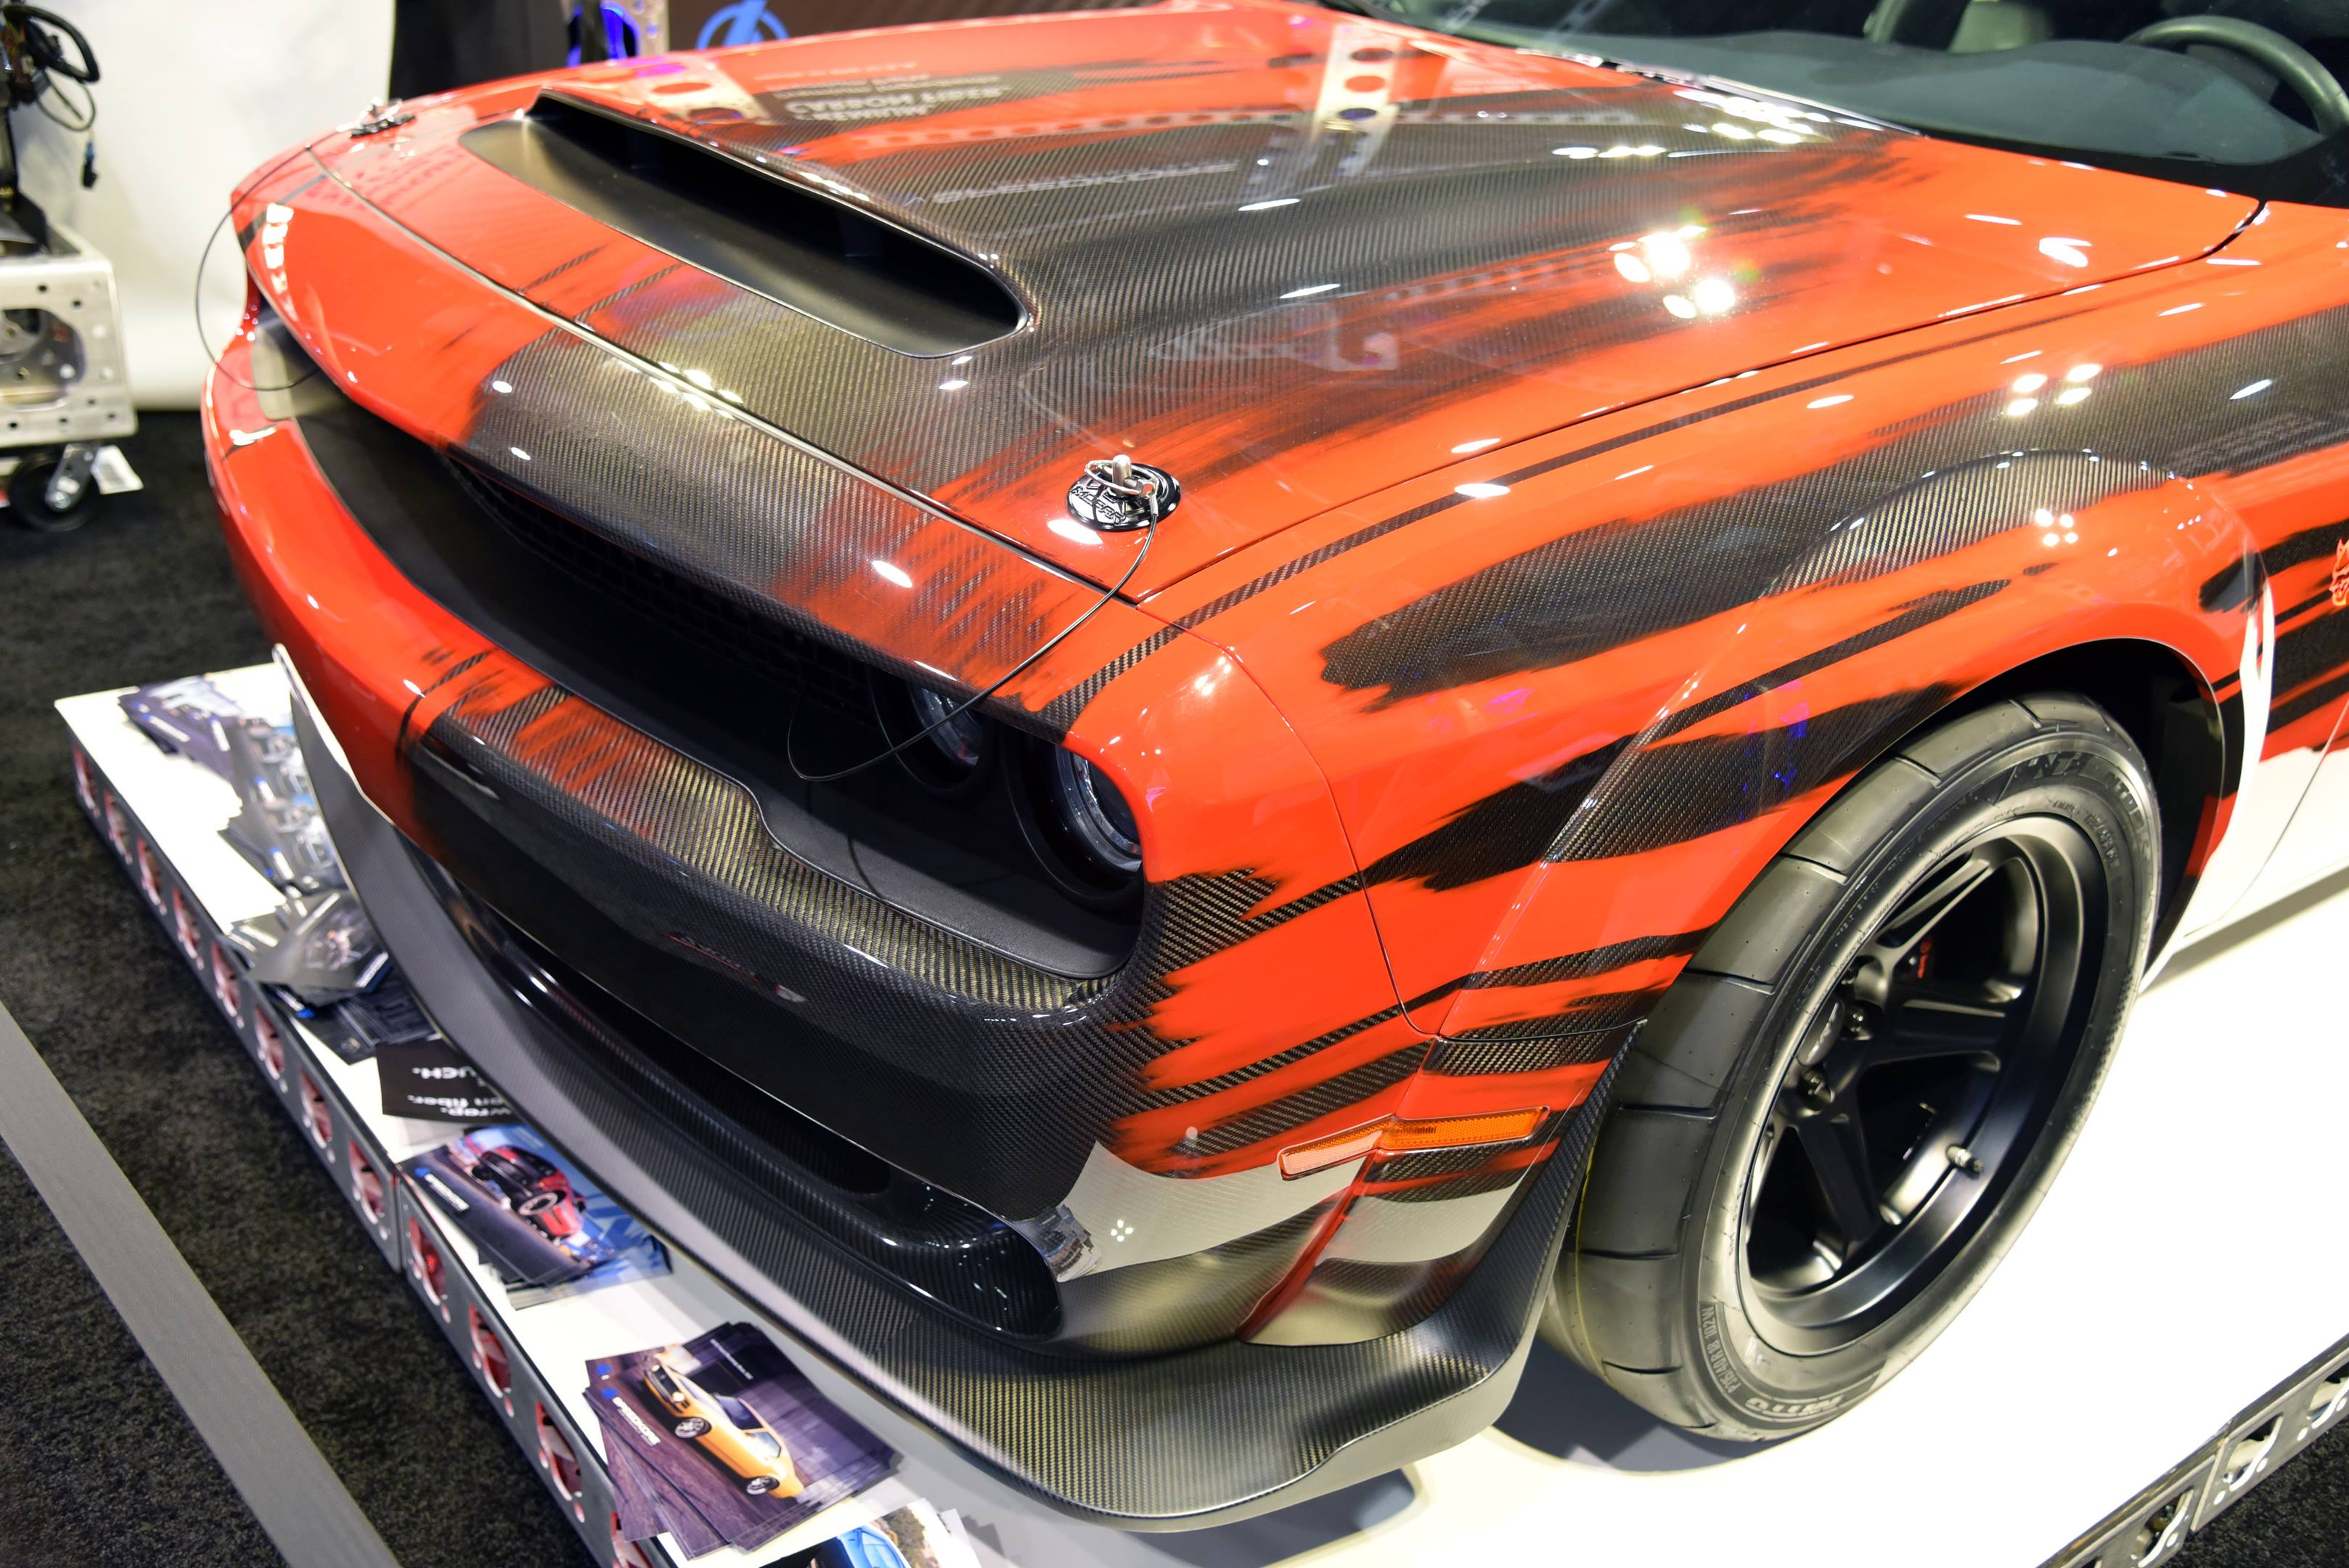 SpeedKore carbon-skinned Dodge Challenger SRT Demon hood detail